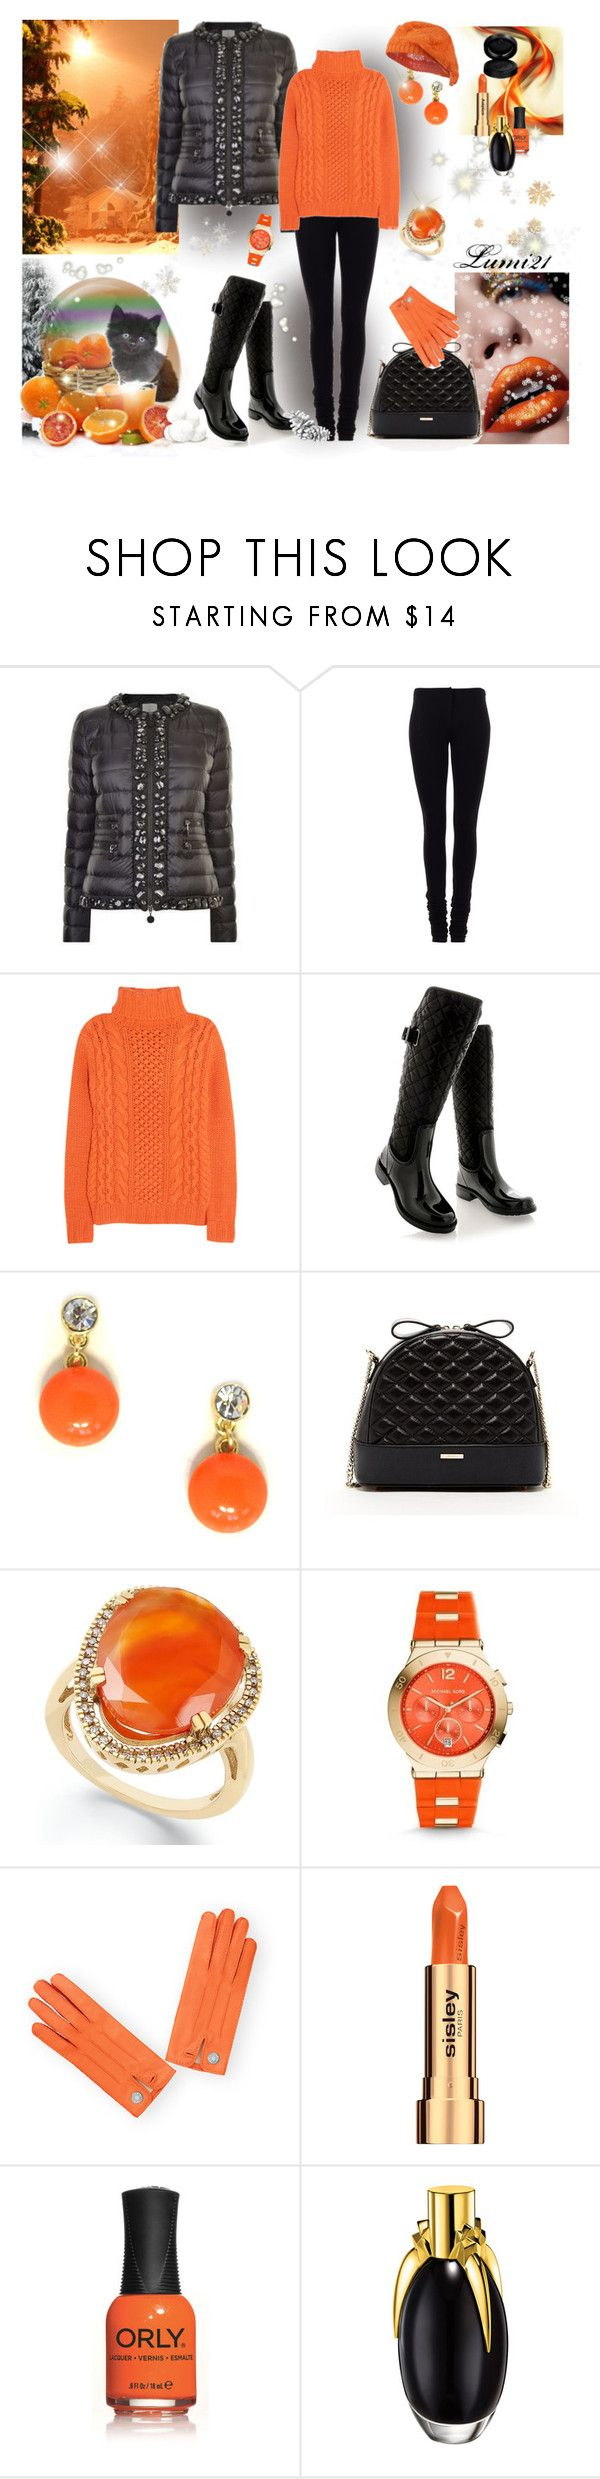 """""""orange winter"""" by lumi-21 ❤ liked on Polyvore featuring Moncler, Givenchy, Joseph, Posh Wellies, Jeweliq, SUSU, Michael Kors, Sisley, ORLY and GAB"""